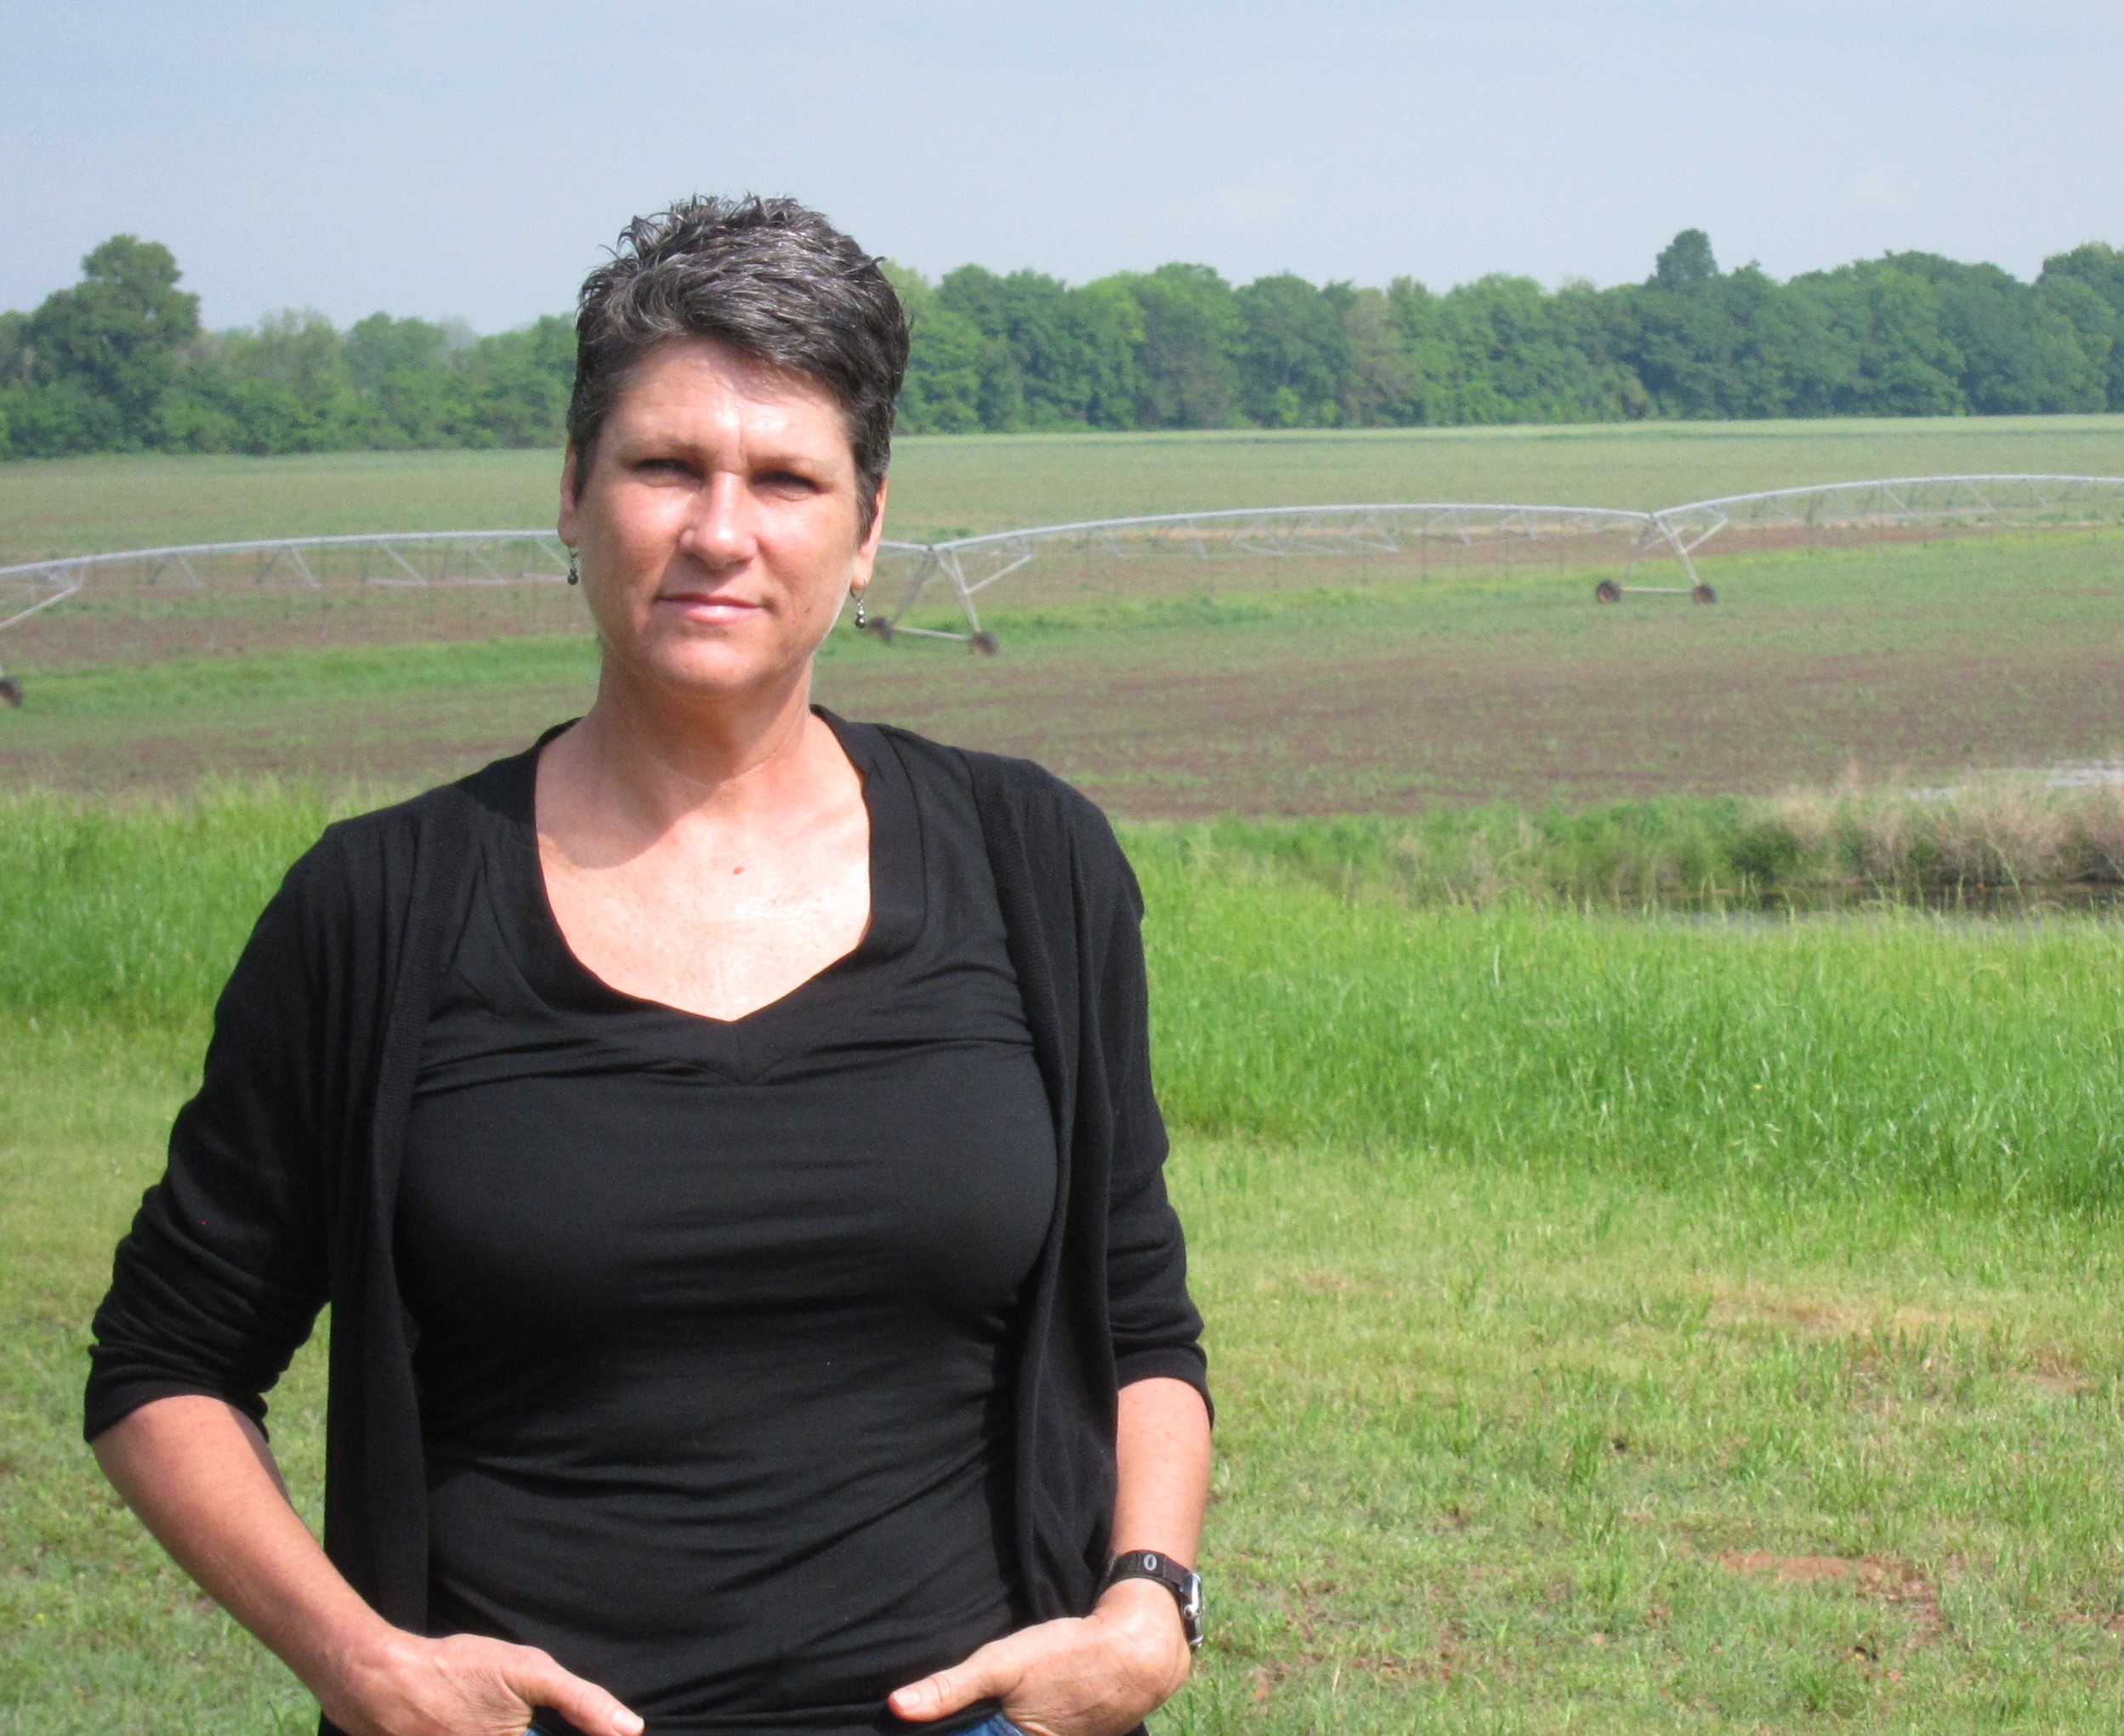 Julia Trigg Crawford has several hundred acres of land in northeast Texas. She lost her recent challenge to the Keystone XL pipeline.